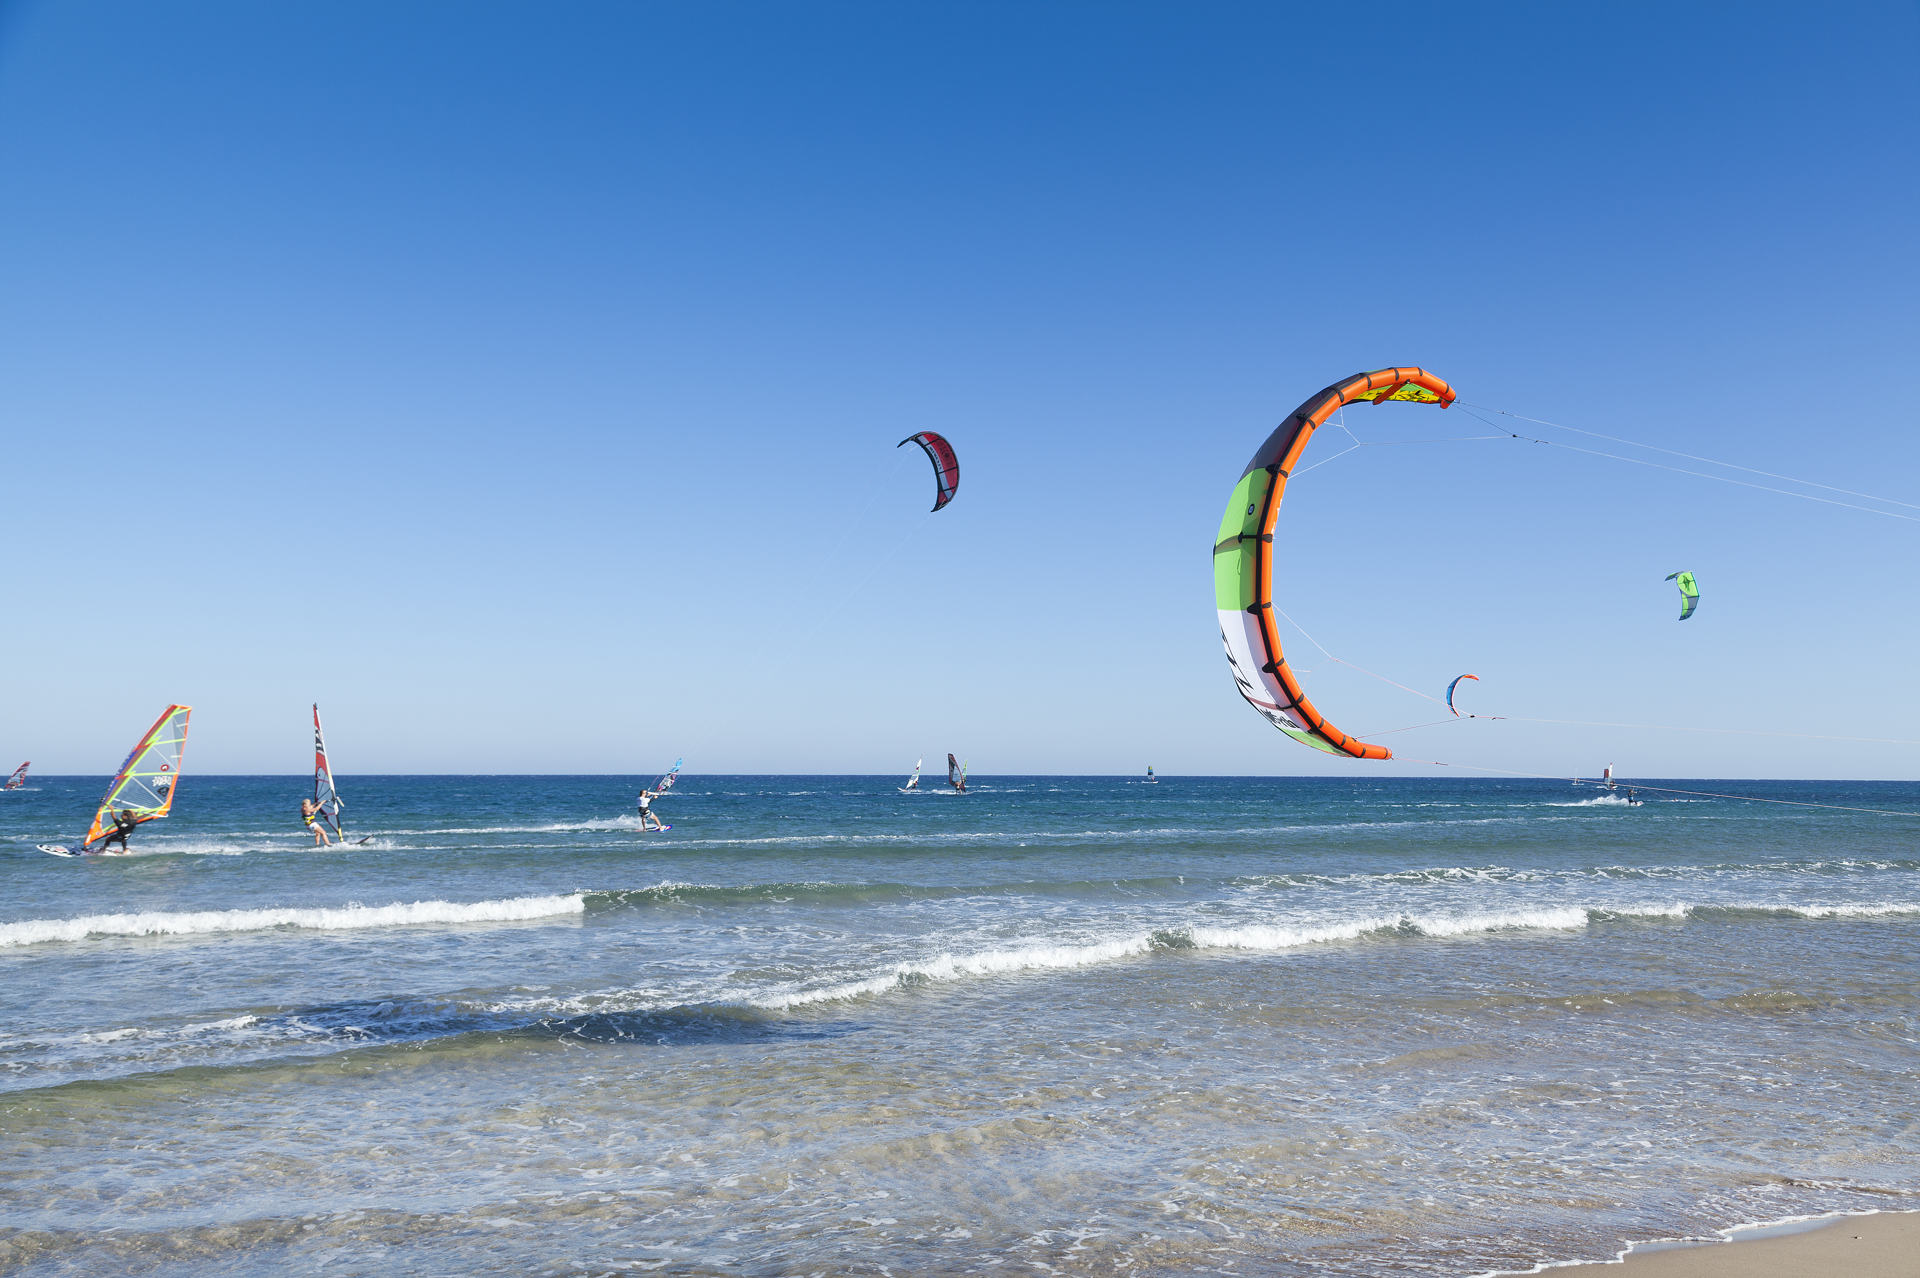 Kite surfers paradise in Rhodes